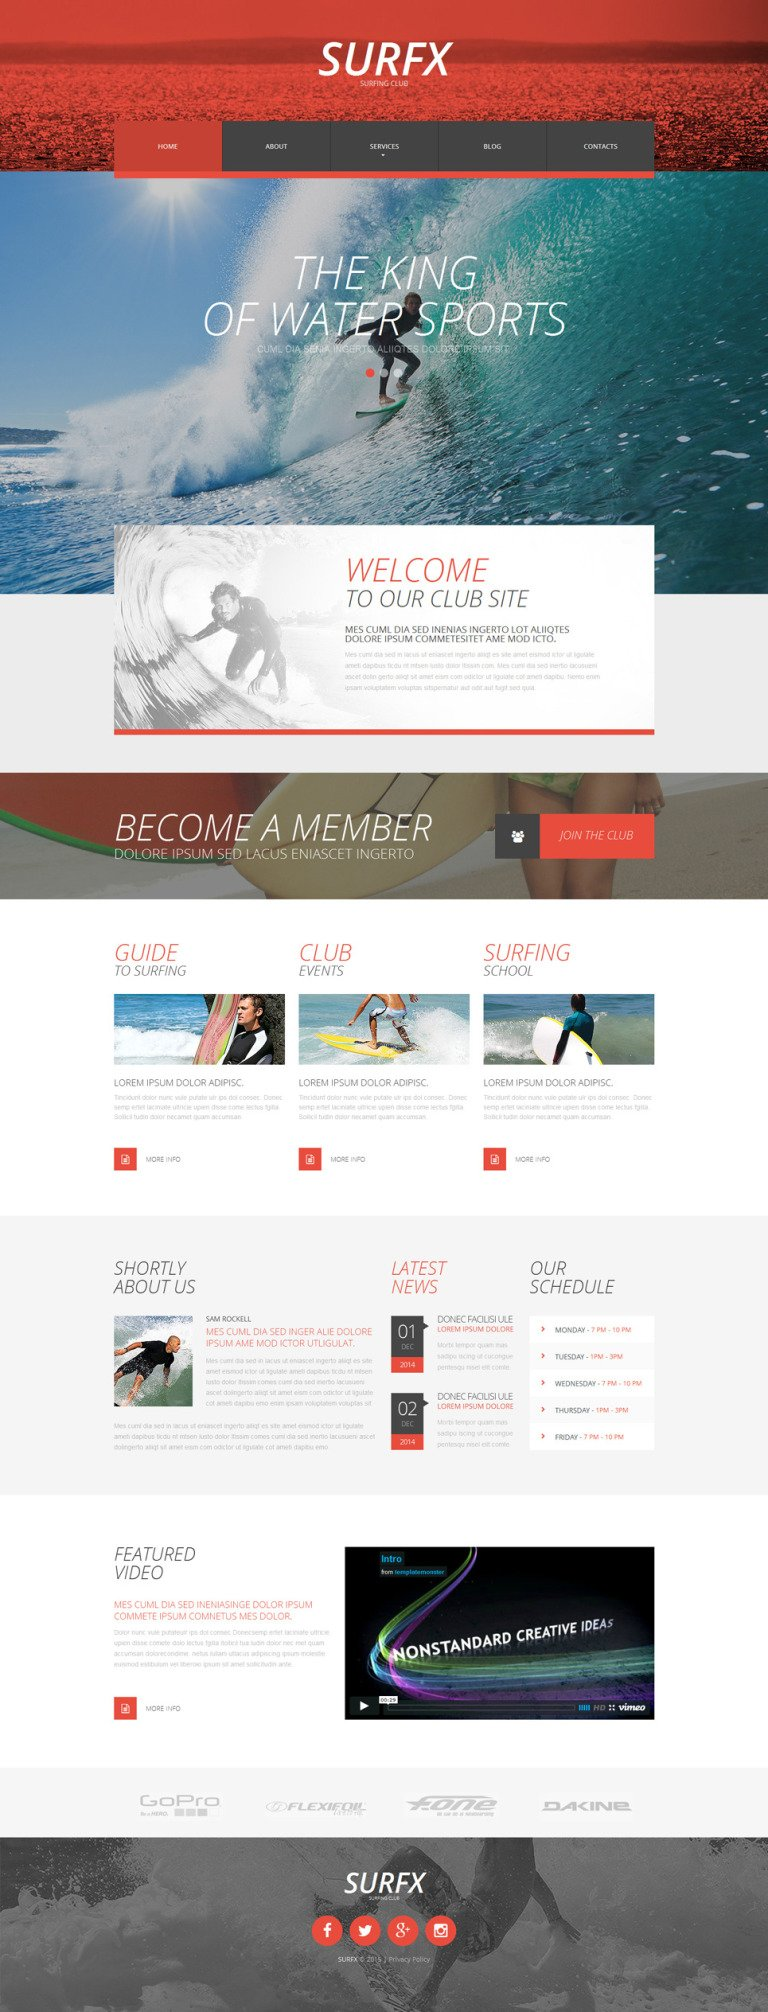 Surfing Club Website Template New Screenshots BIG